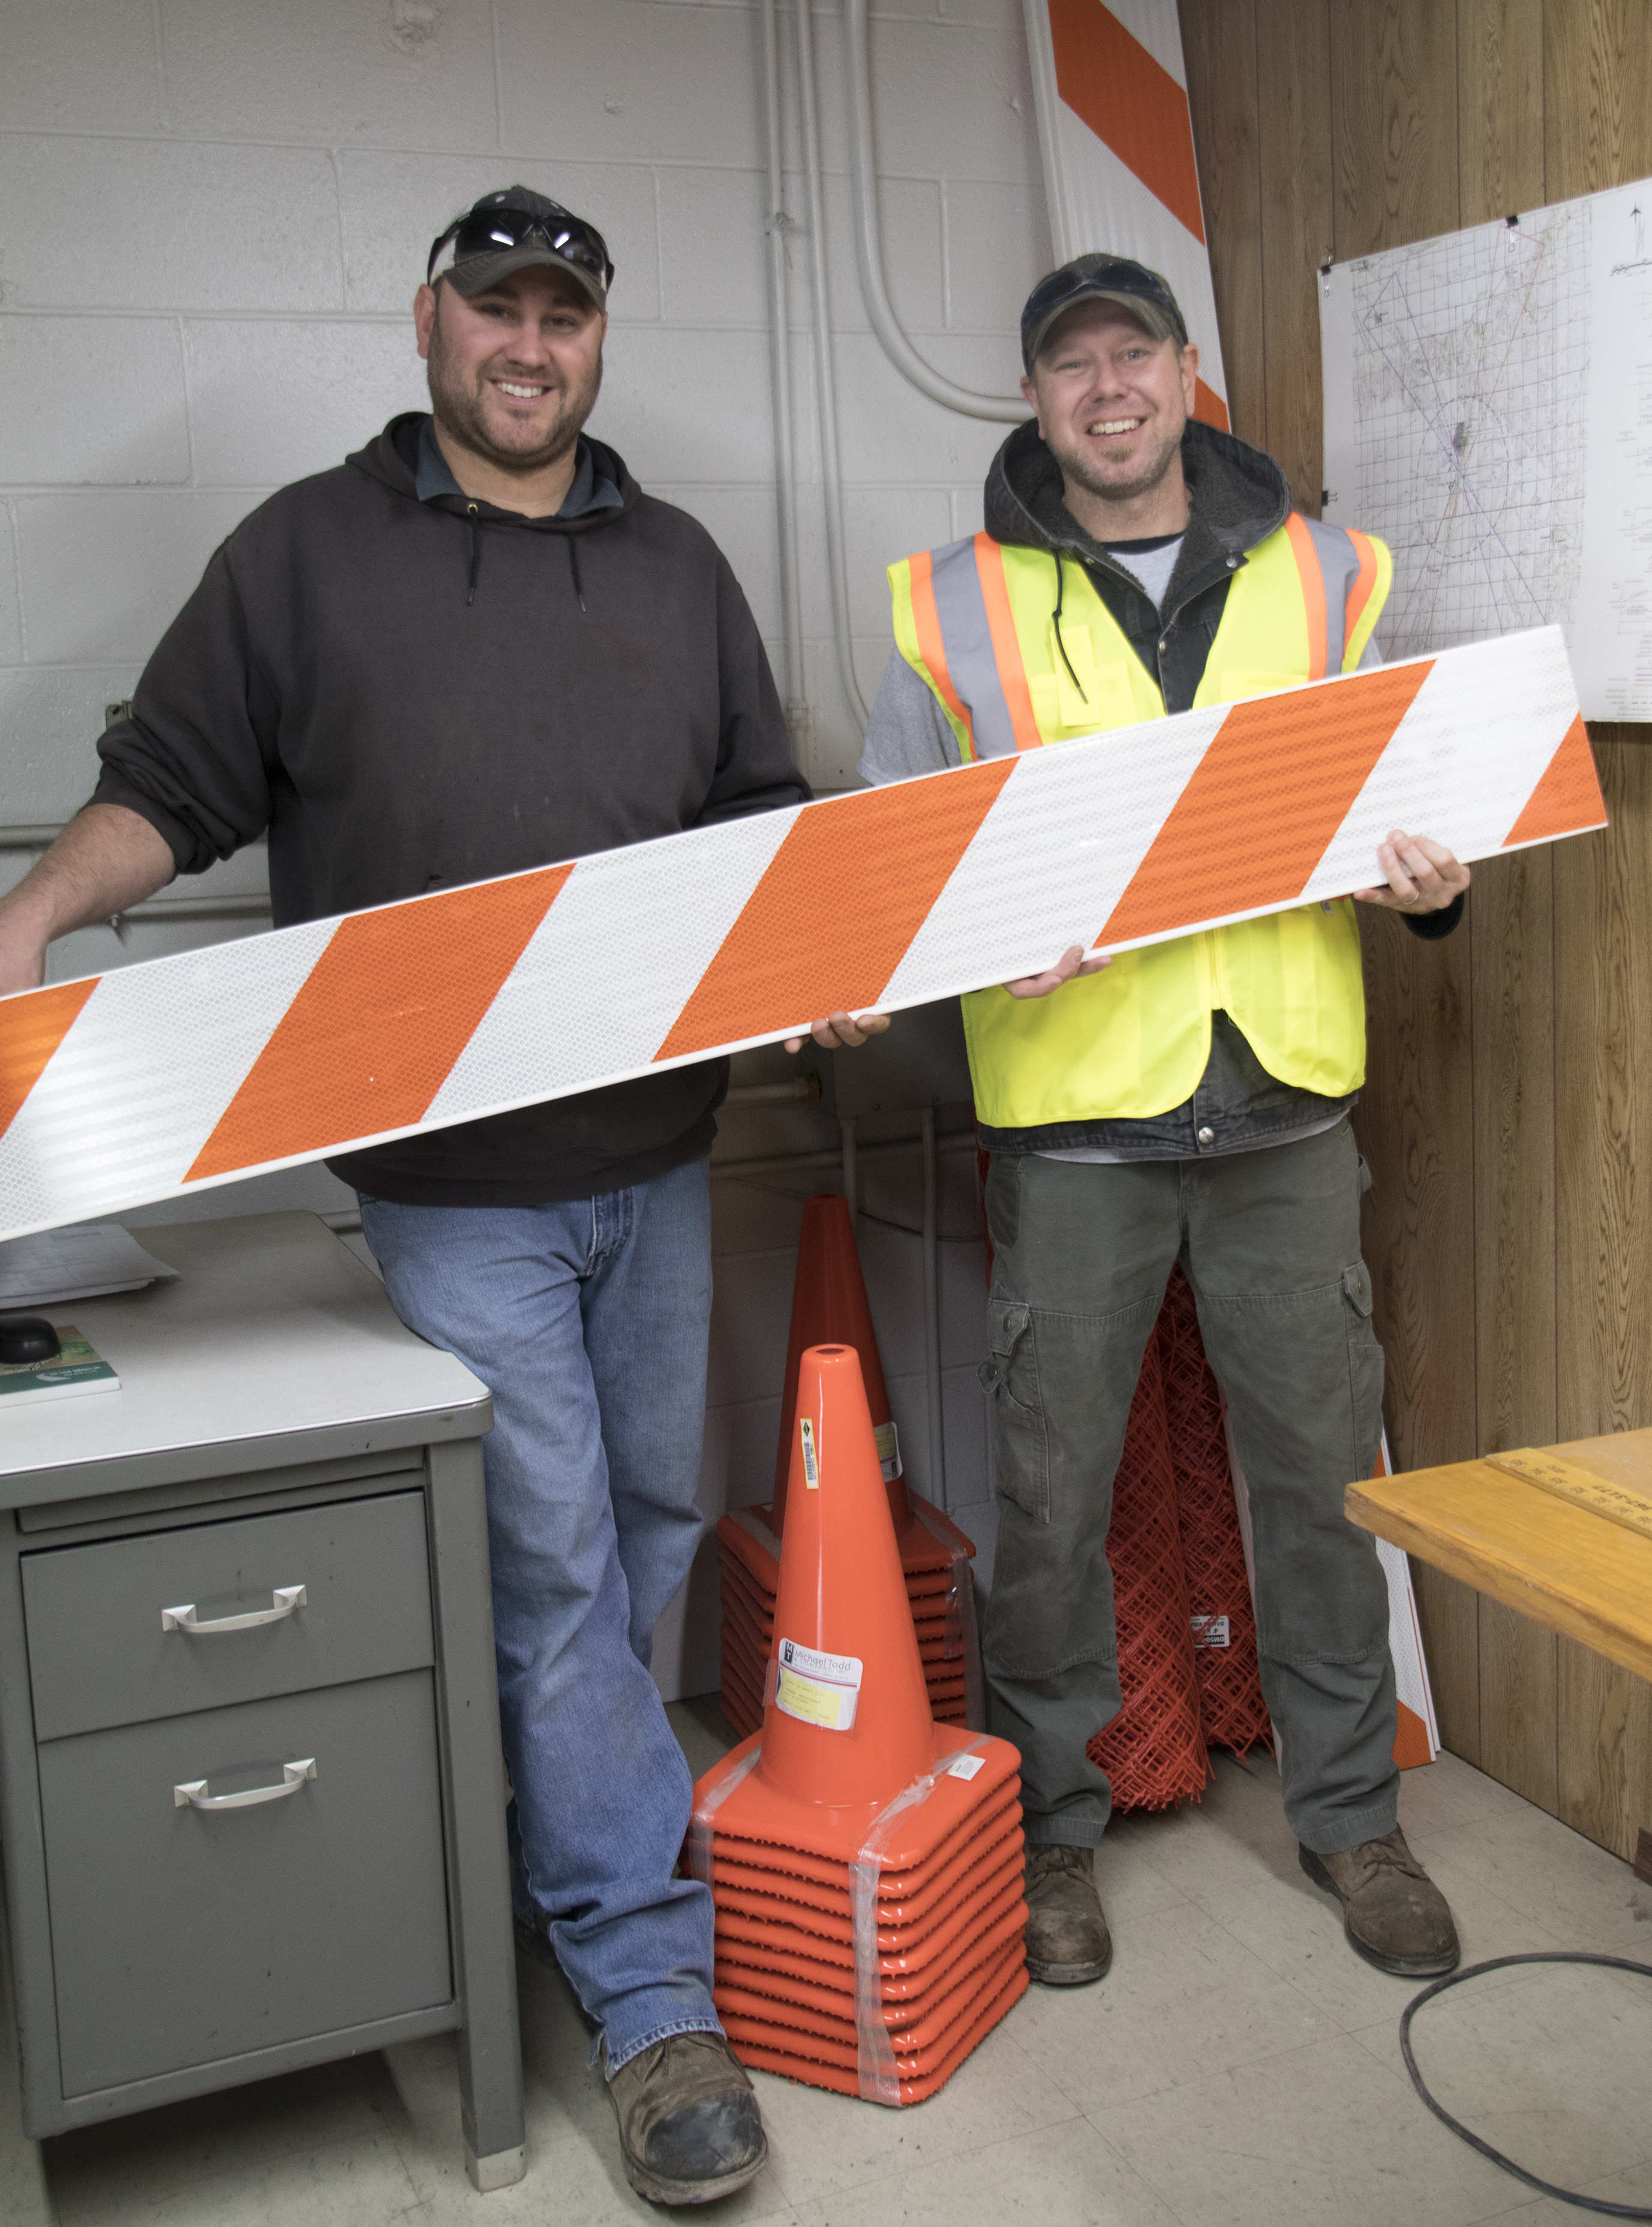 David City purchases items with Safety Grant